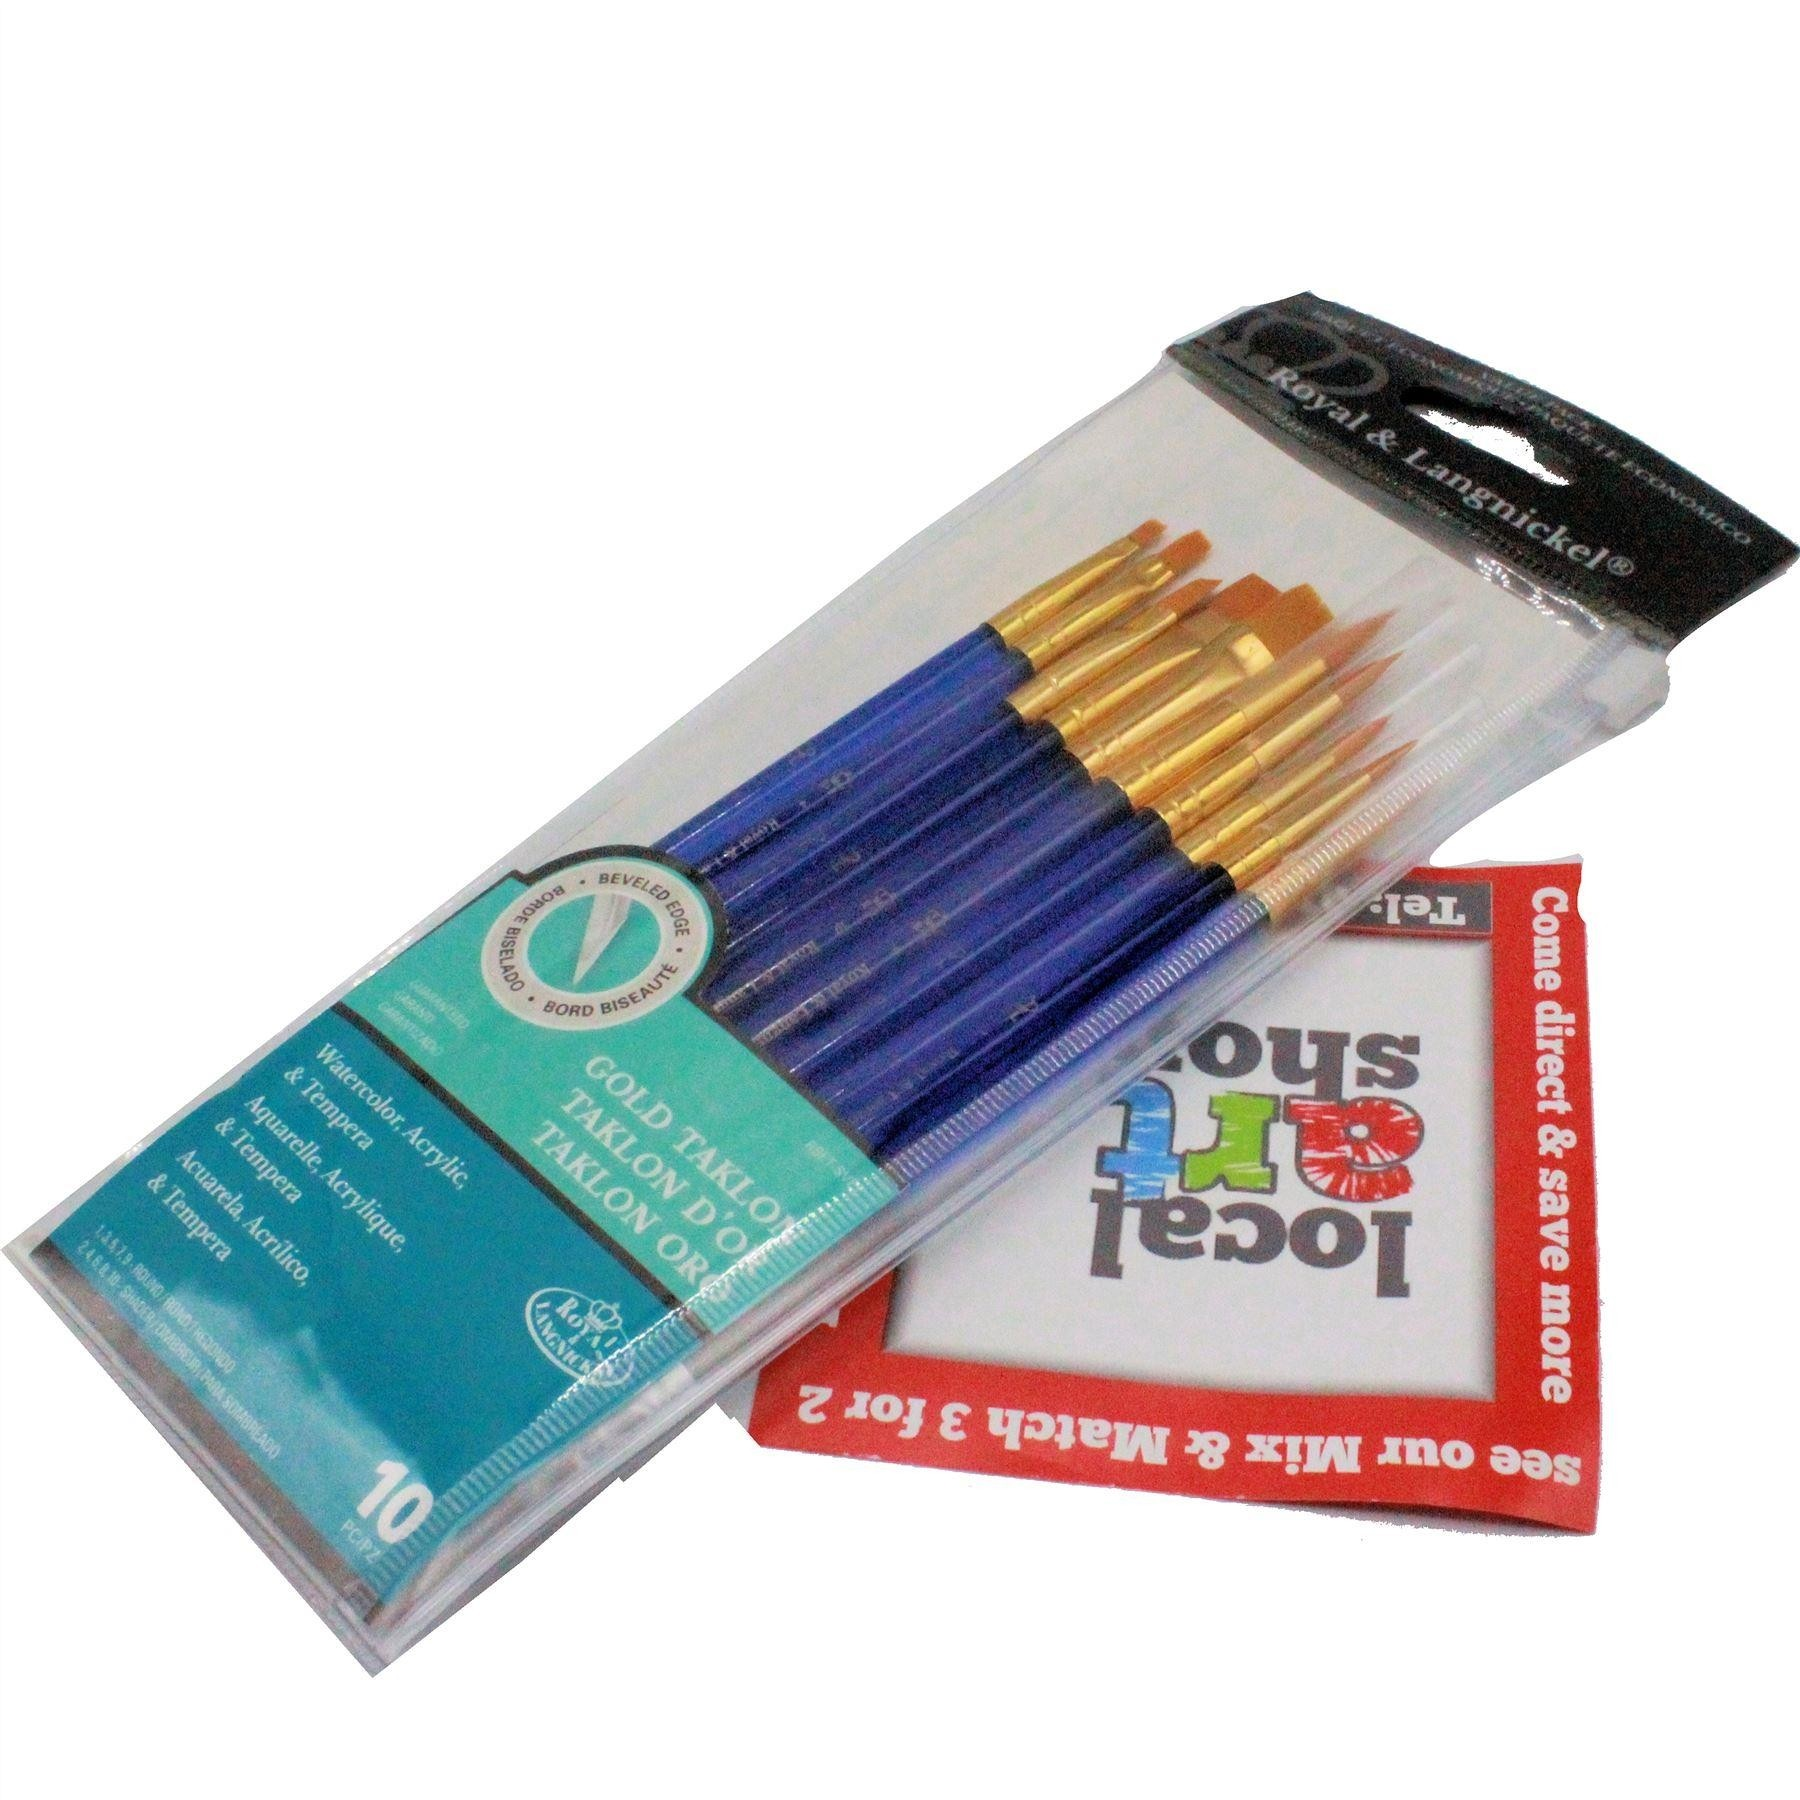 Royal & Langnickel Super Value Pack of 10 Brushes